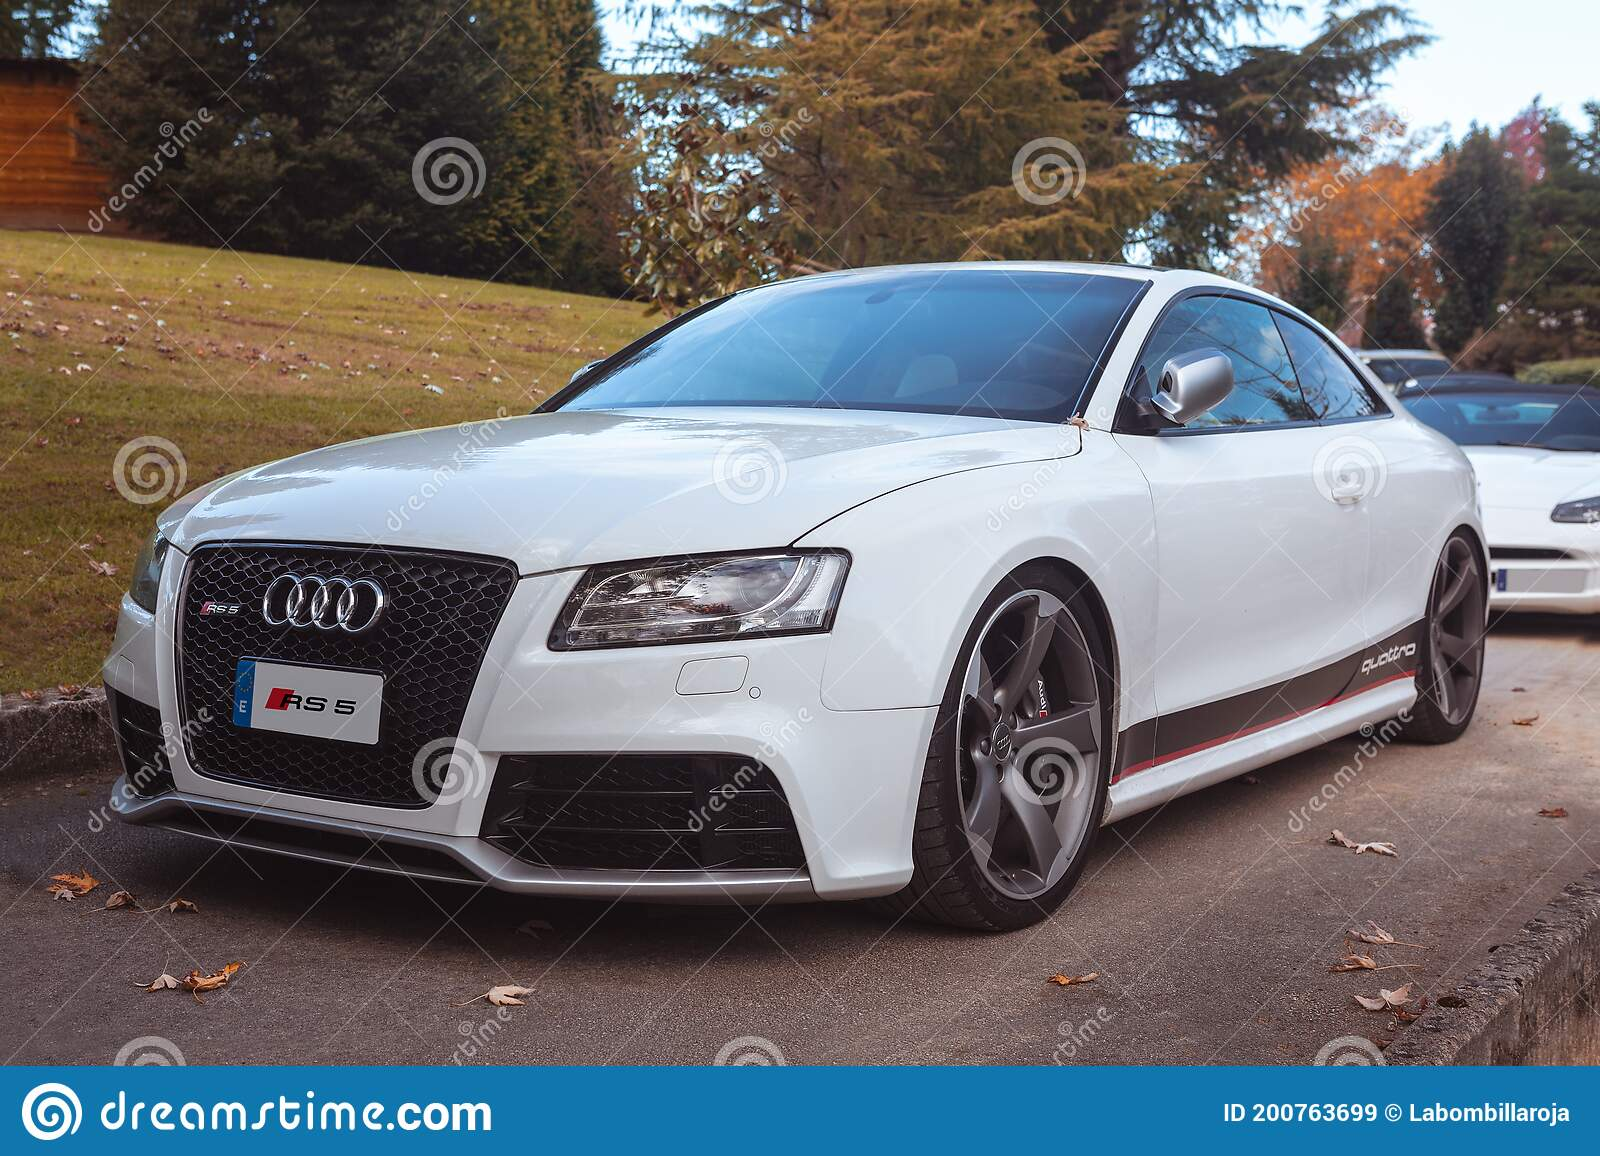 White Audi Rs5 Parked Editorial Stock Image Image Of Limited 200763699